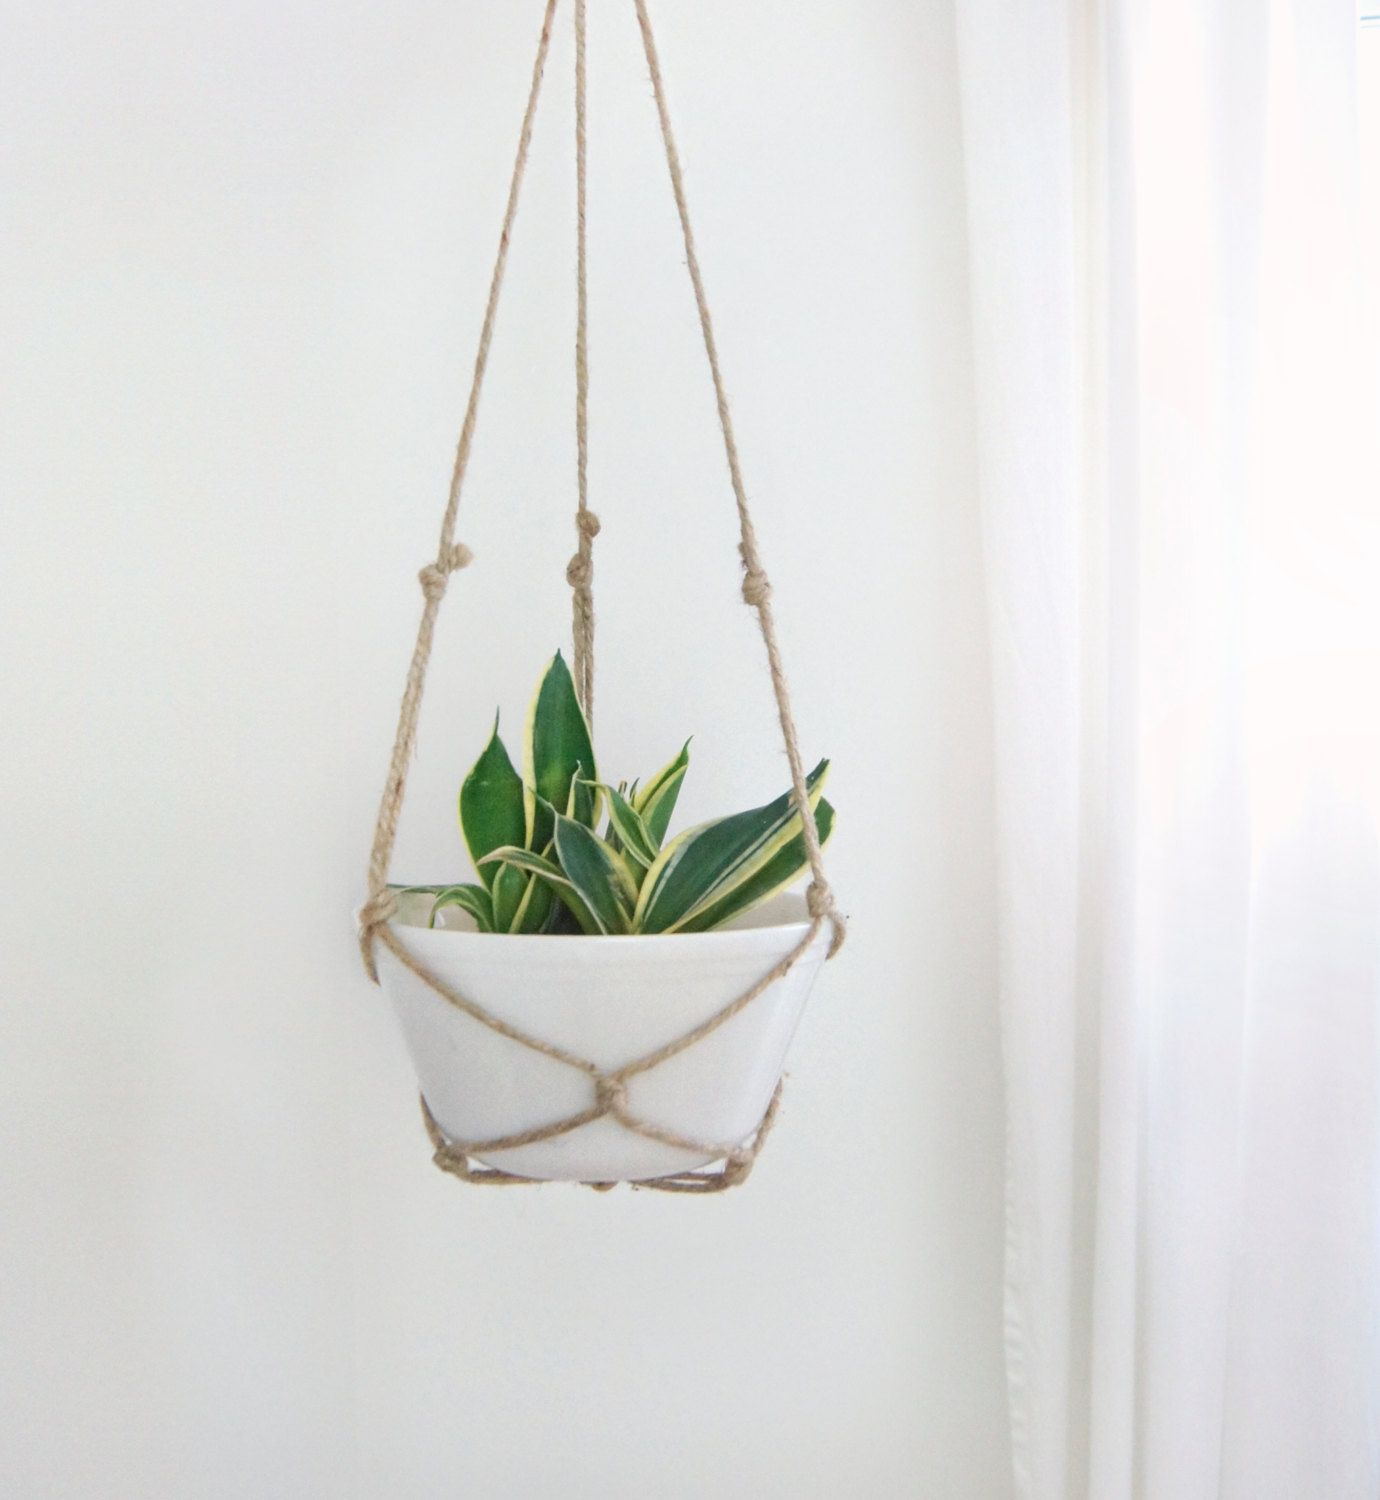 large vintage milk glass jute rope hanging planter for cactus and